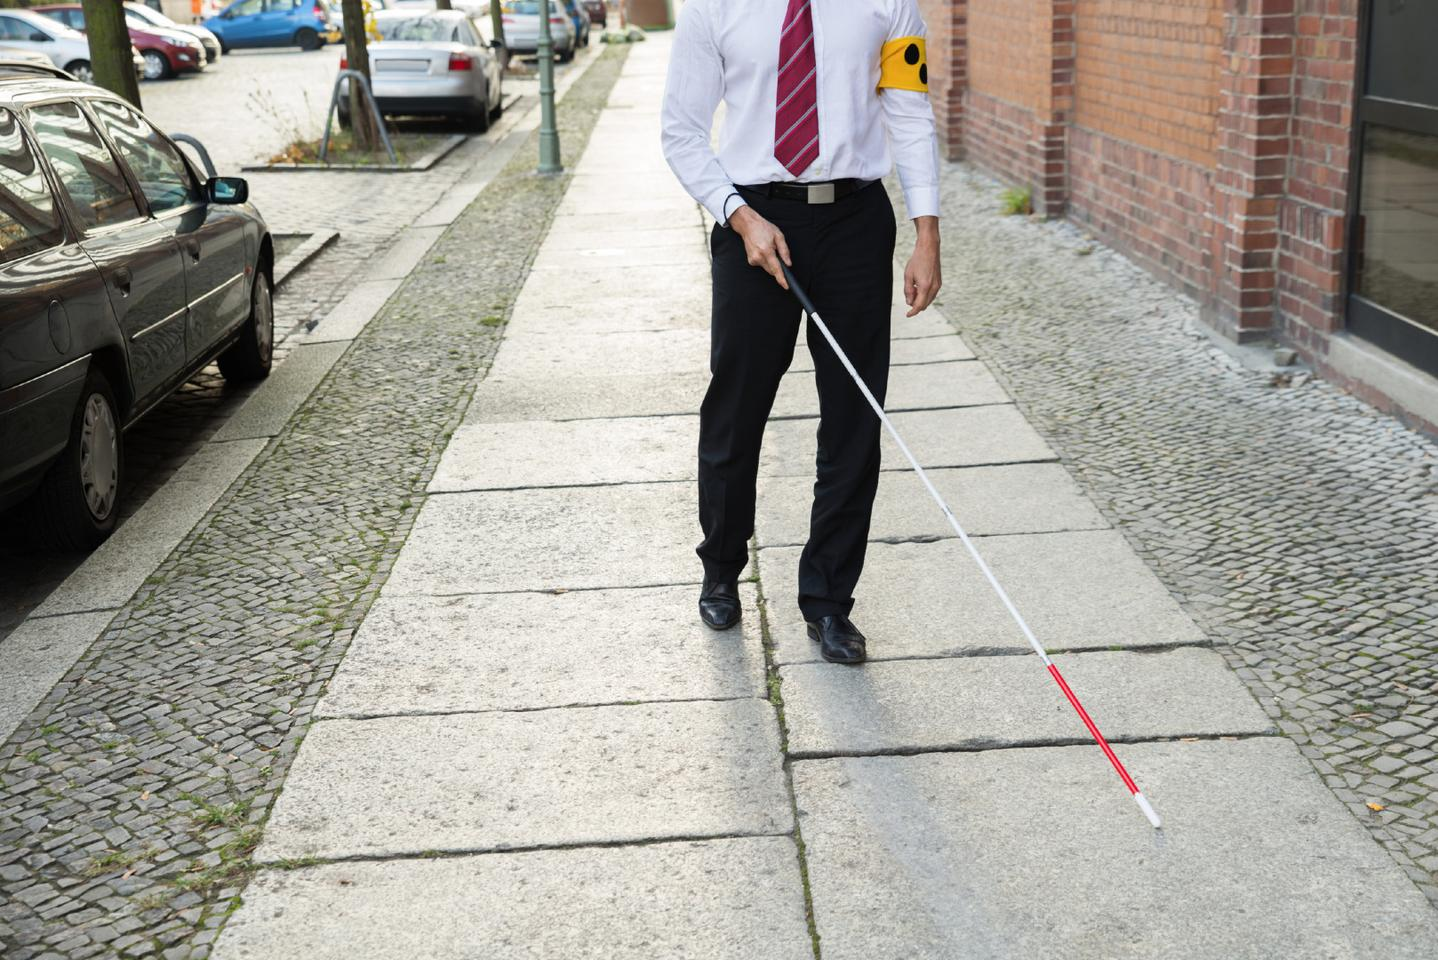 The XploR cane features facial recognition and GPS navigation systems (Photo: Birmingham City University)